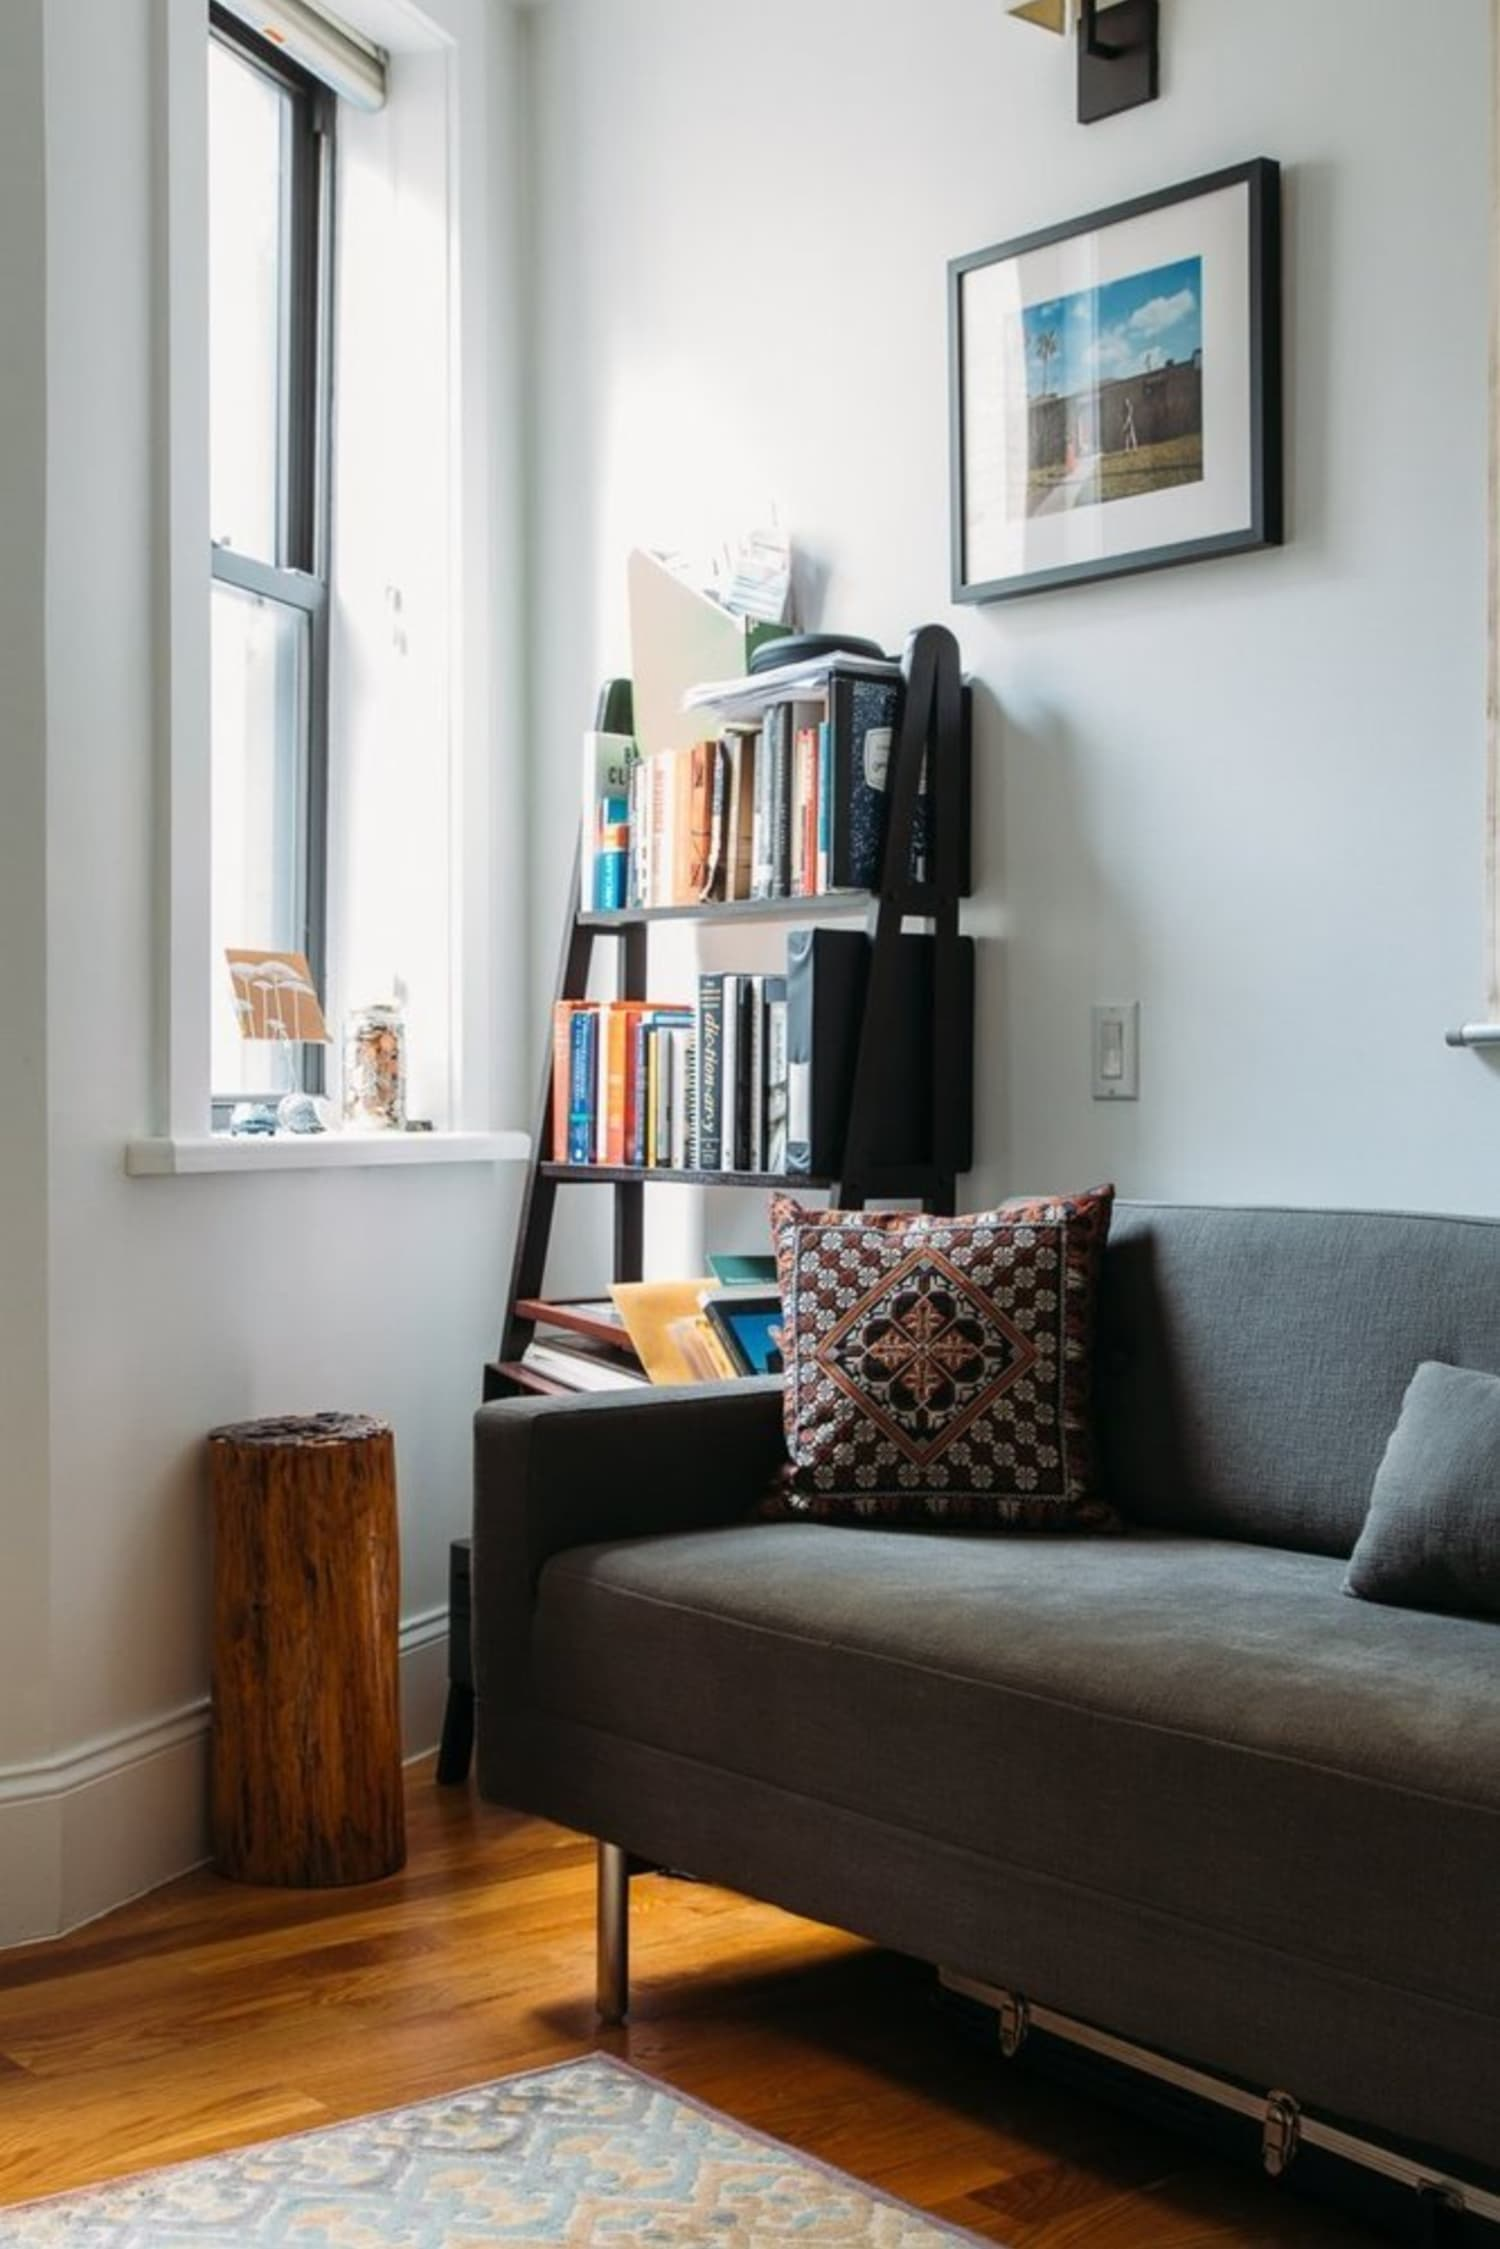 Sofa Beds: Are They Ever Really Worth It?   Apartment Therapy